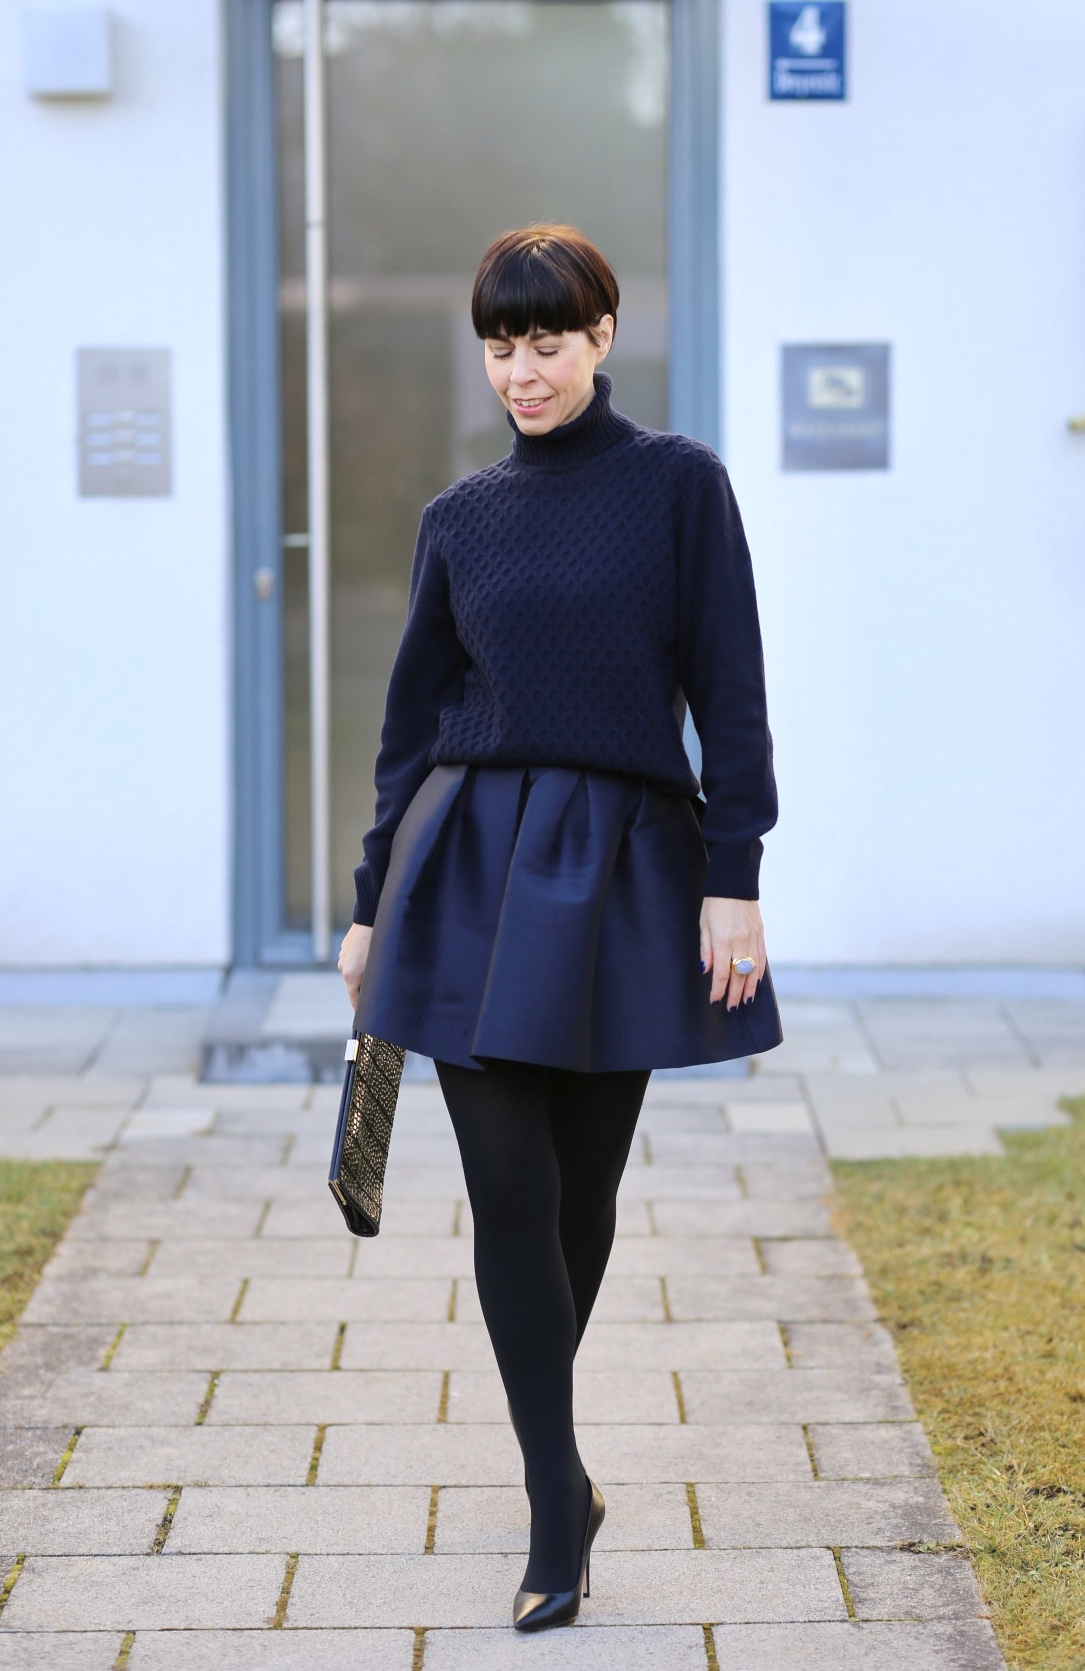 Frau mit dunkelblauem Outfit im Streetstyle